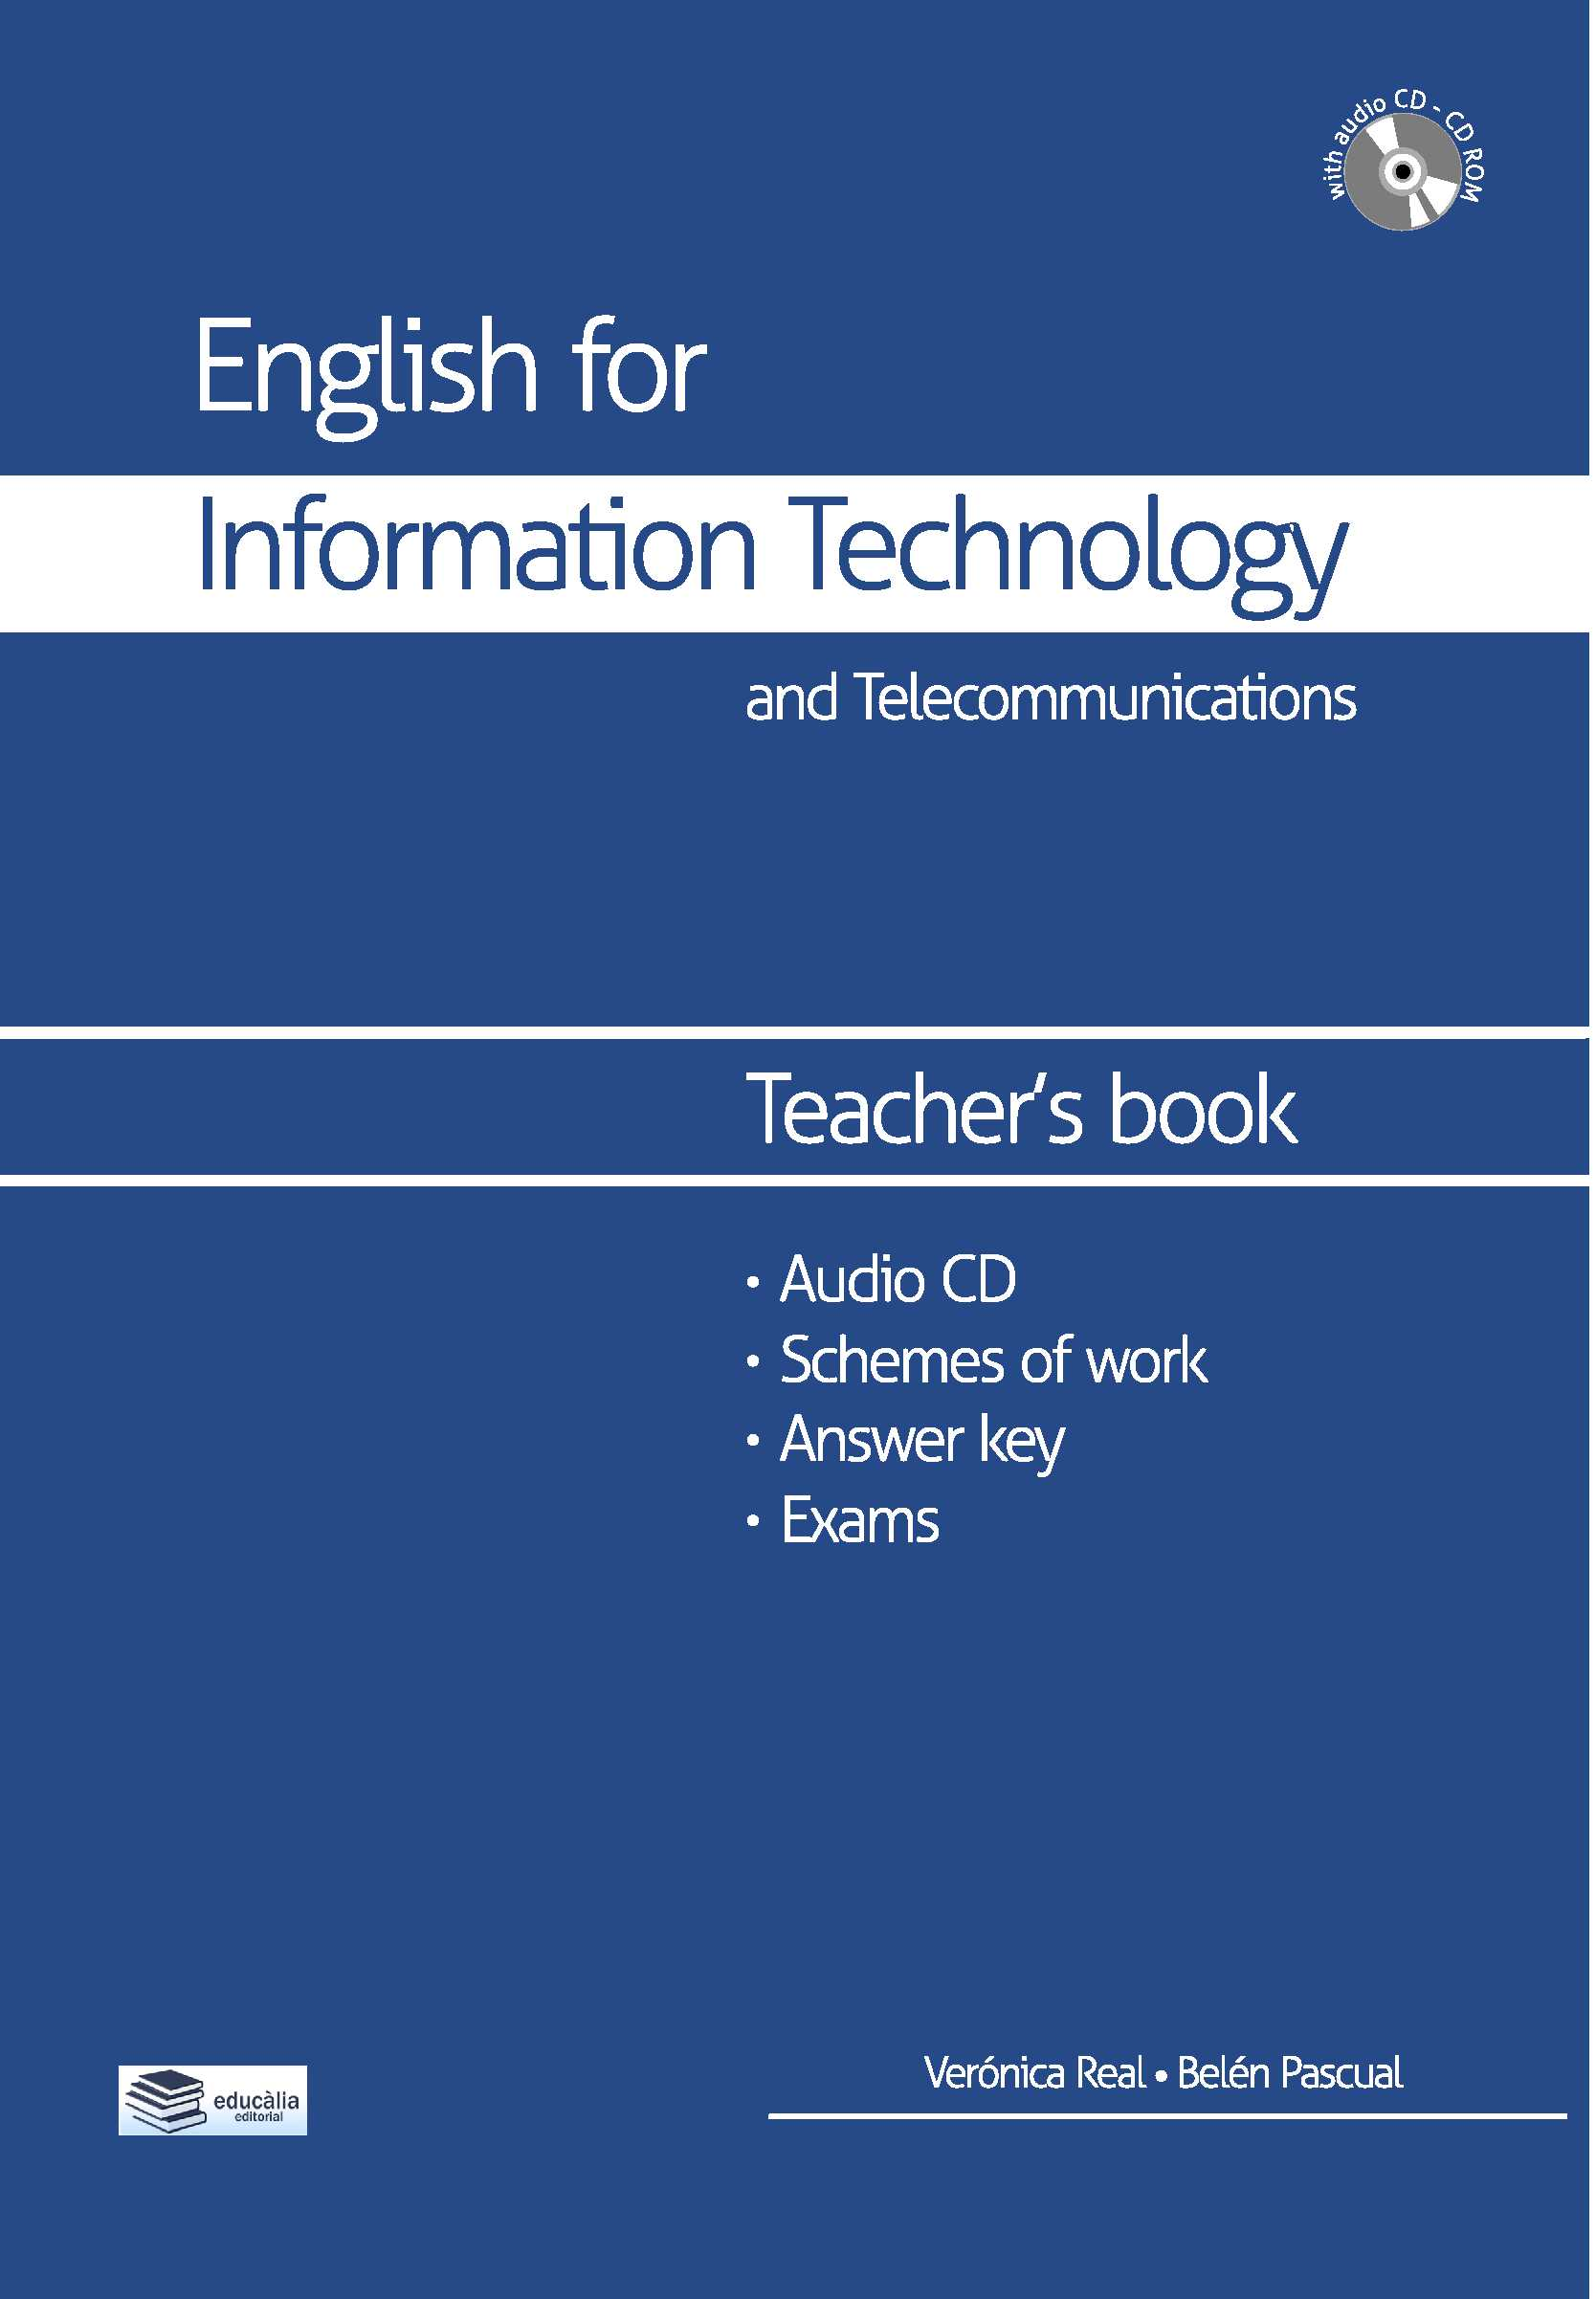 Teacher's book English for information technology